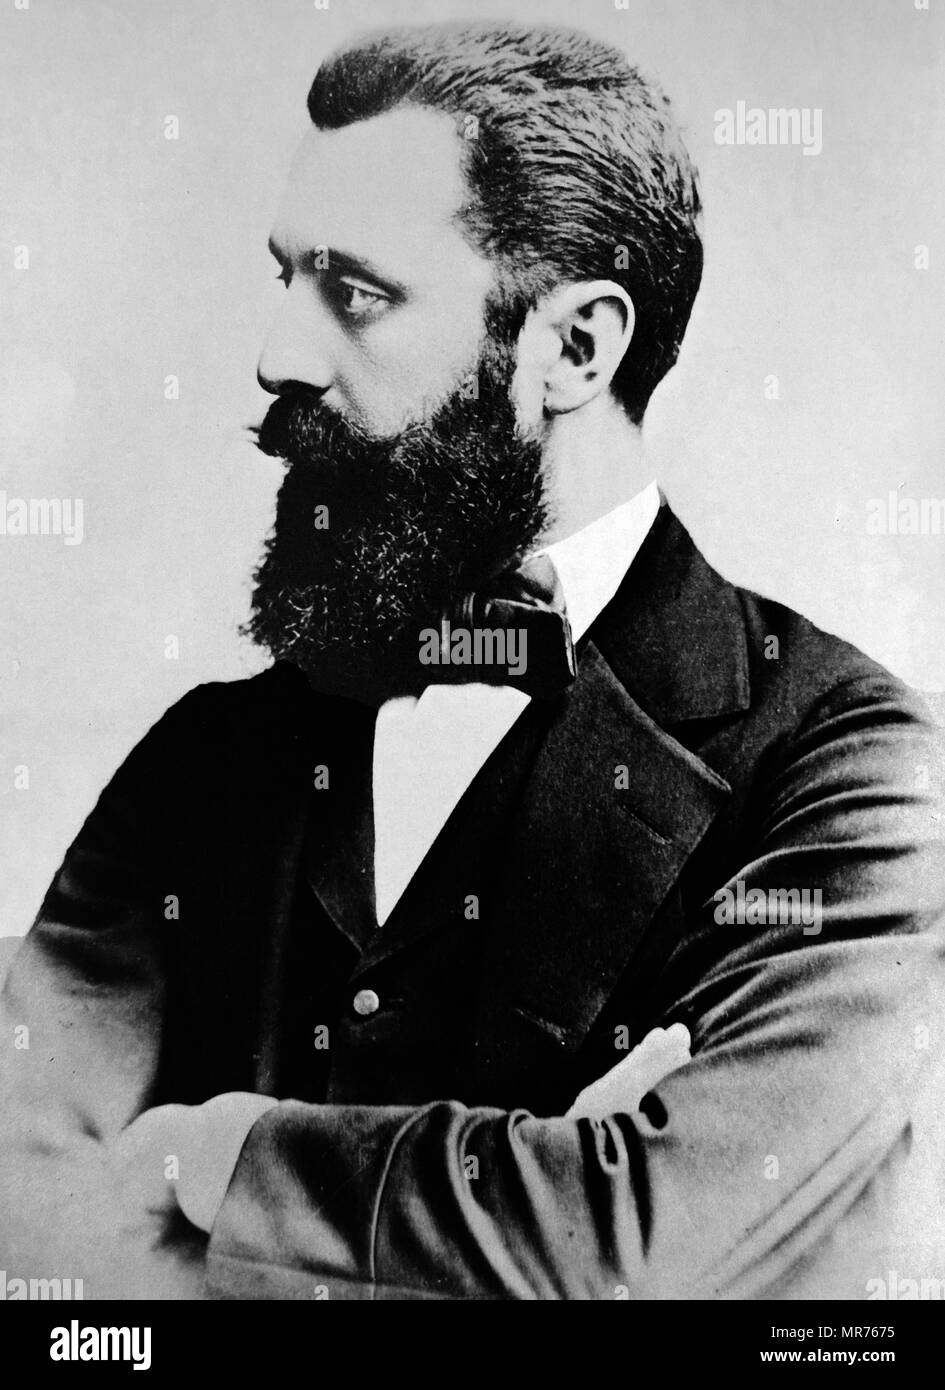 Theodor Herzl (1860 – 1904), Austro-Hungarian journalist, playwright, political activist, and writer who was the father of modern political Zionism. Herzl formed the Zionist Organization and promoted Jewish immigration to Palestine in an effort to form a Jewish state. Though he died before its establishment, he is known as the father of the State of Israel. - Stock Image